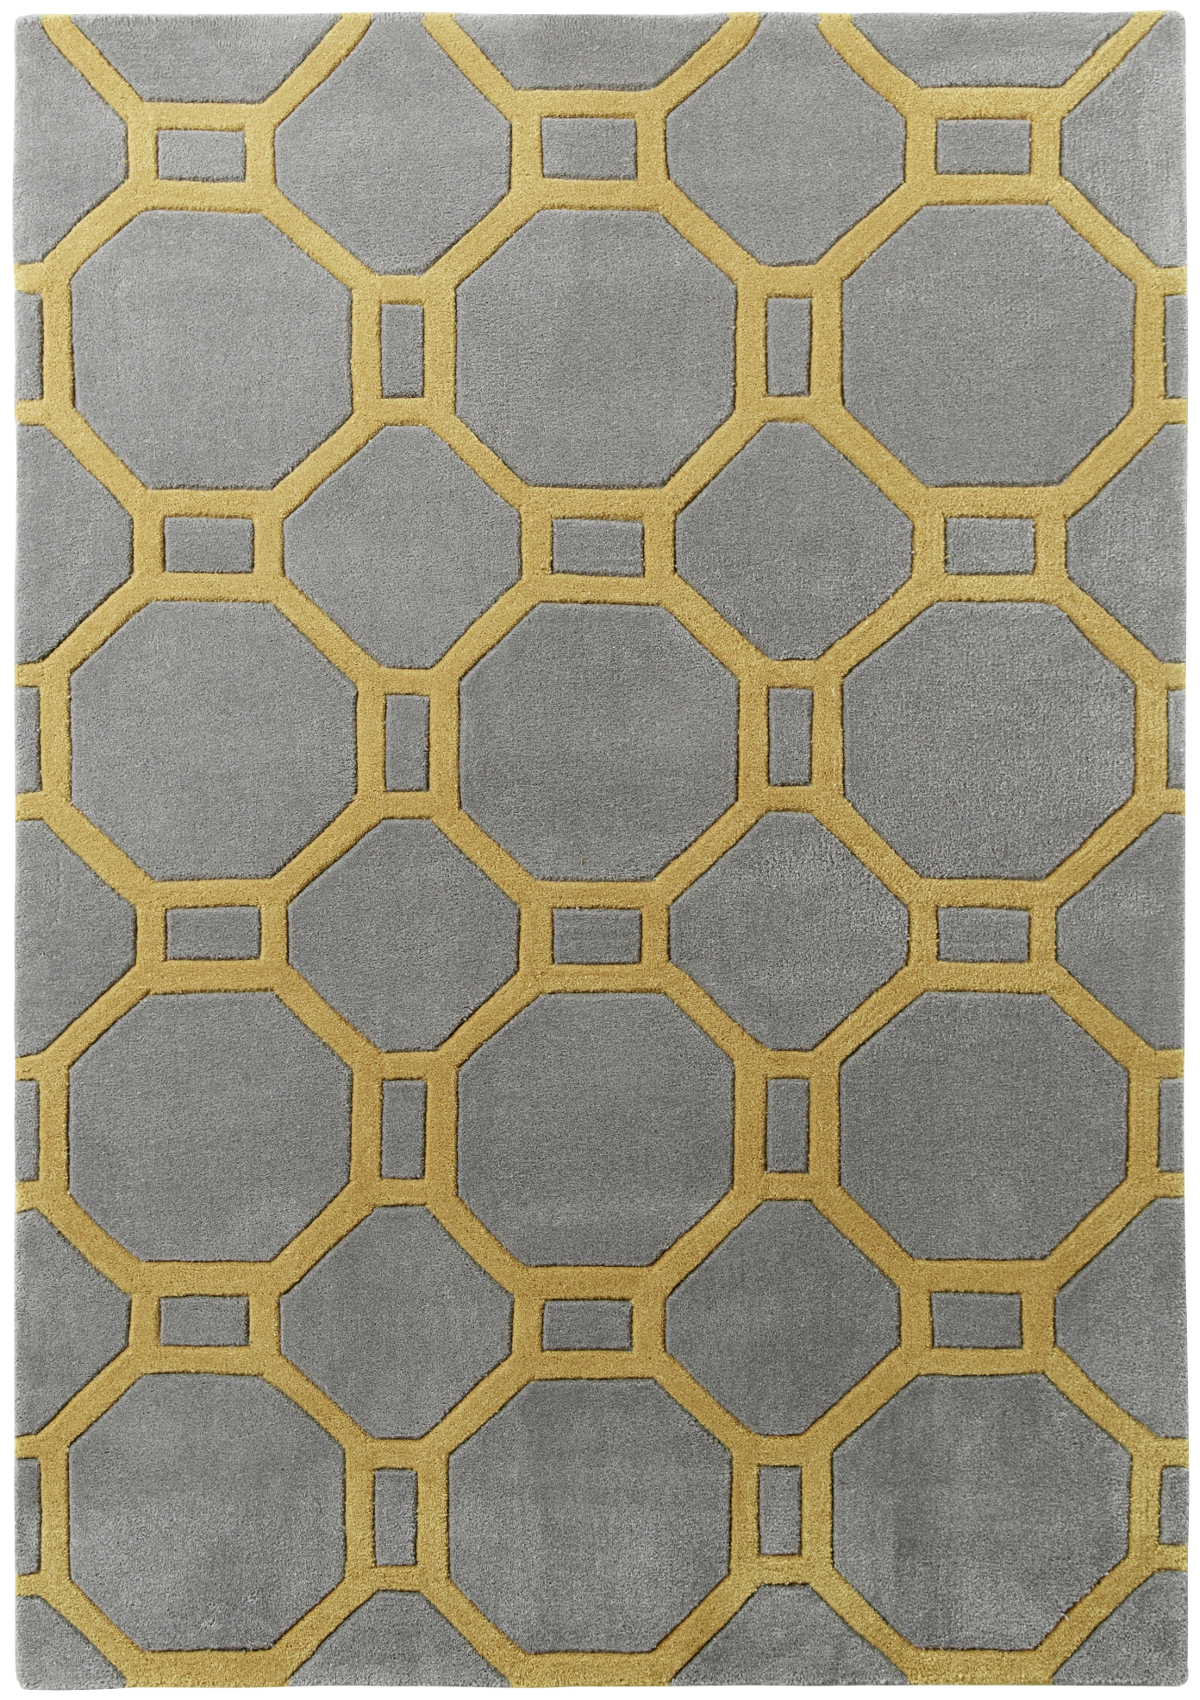 Fashion style Design rugs for lady